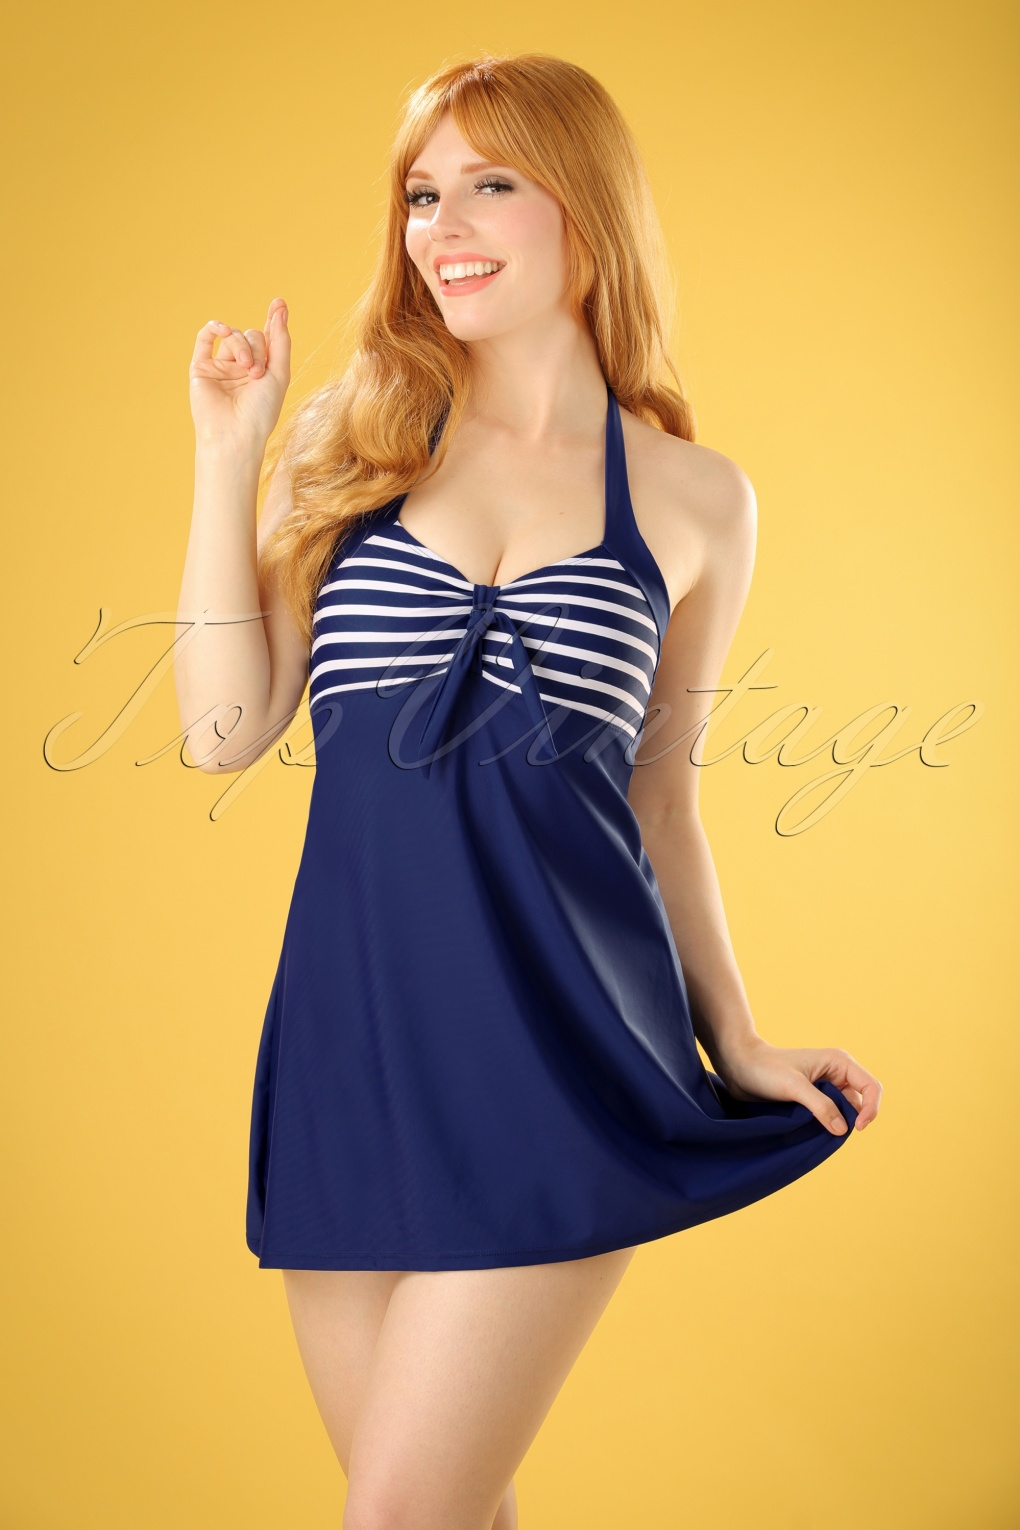 Vintage Bathing Suits | Retro Swimwear | Vintage Swimsuits 50s Sophia Striped Swimdress in Blue £43.93 AT vintagedancer.com